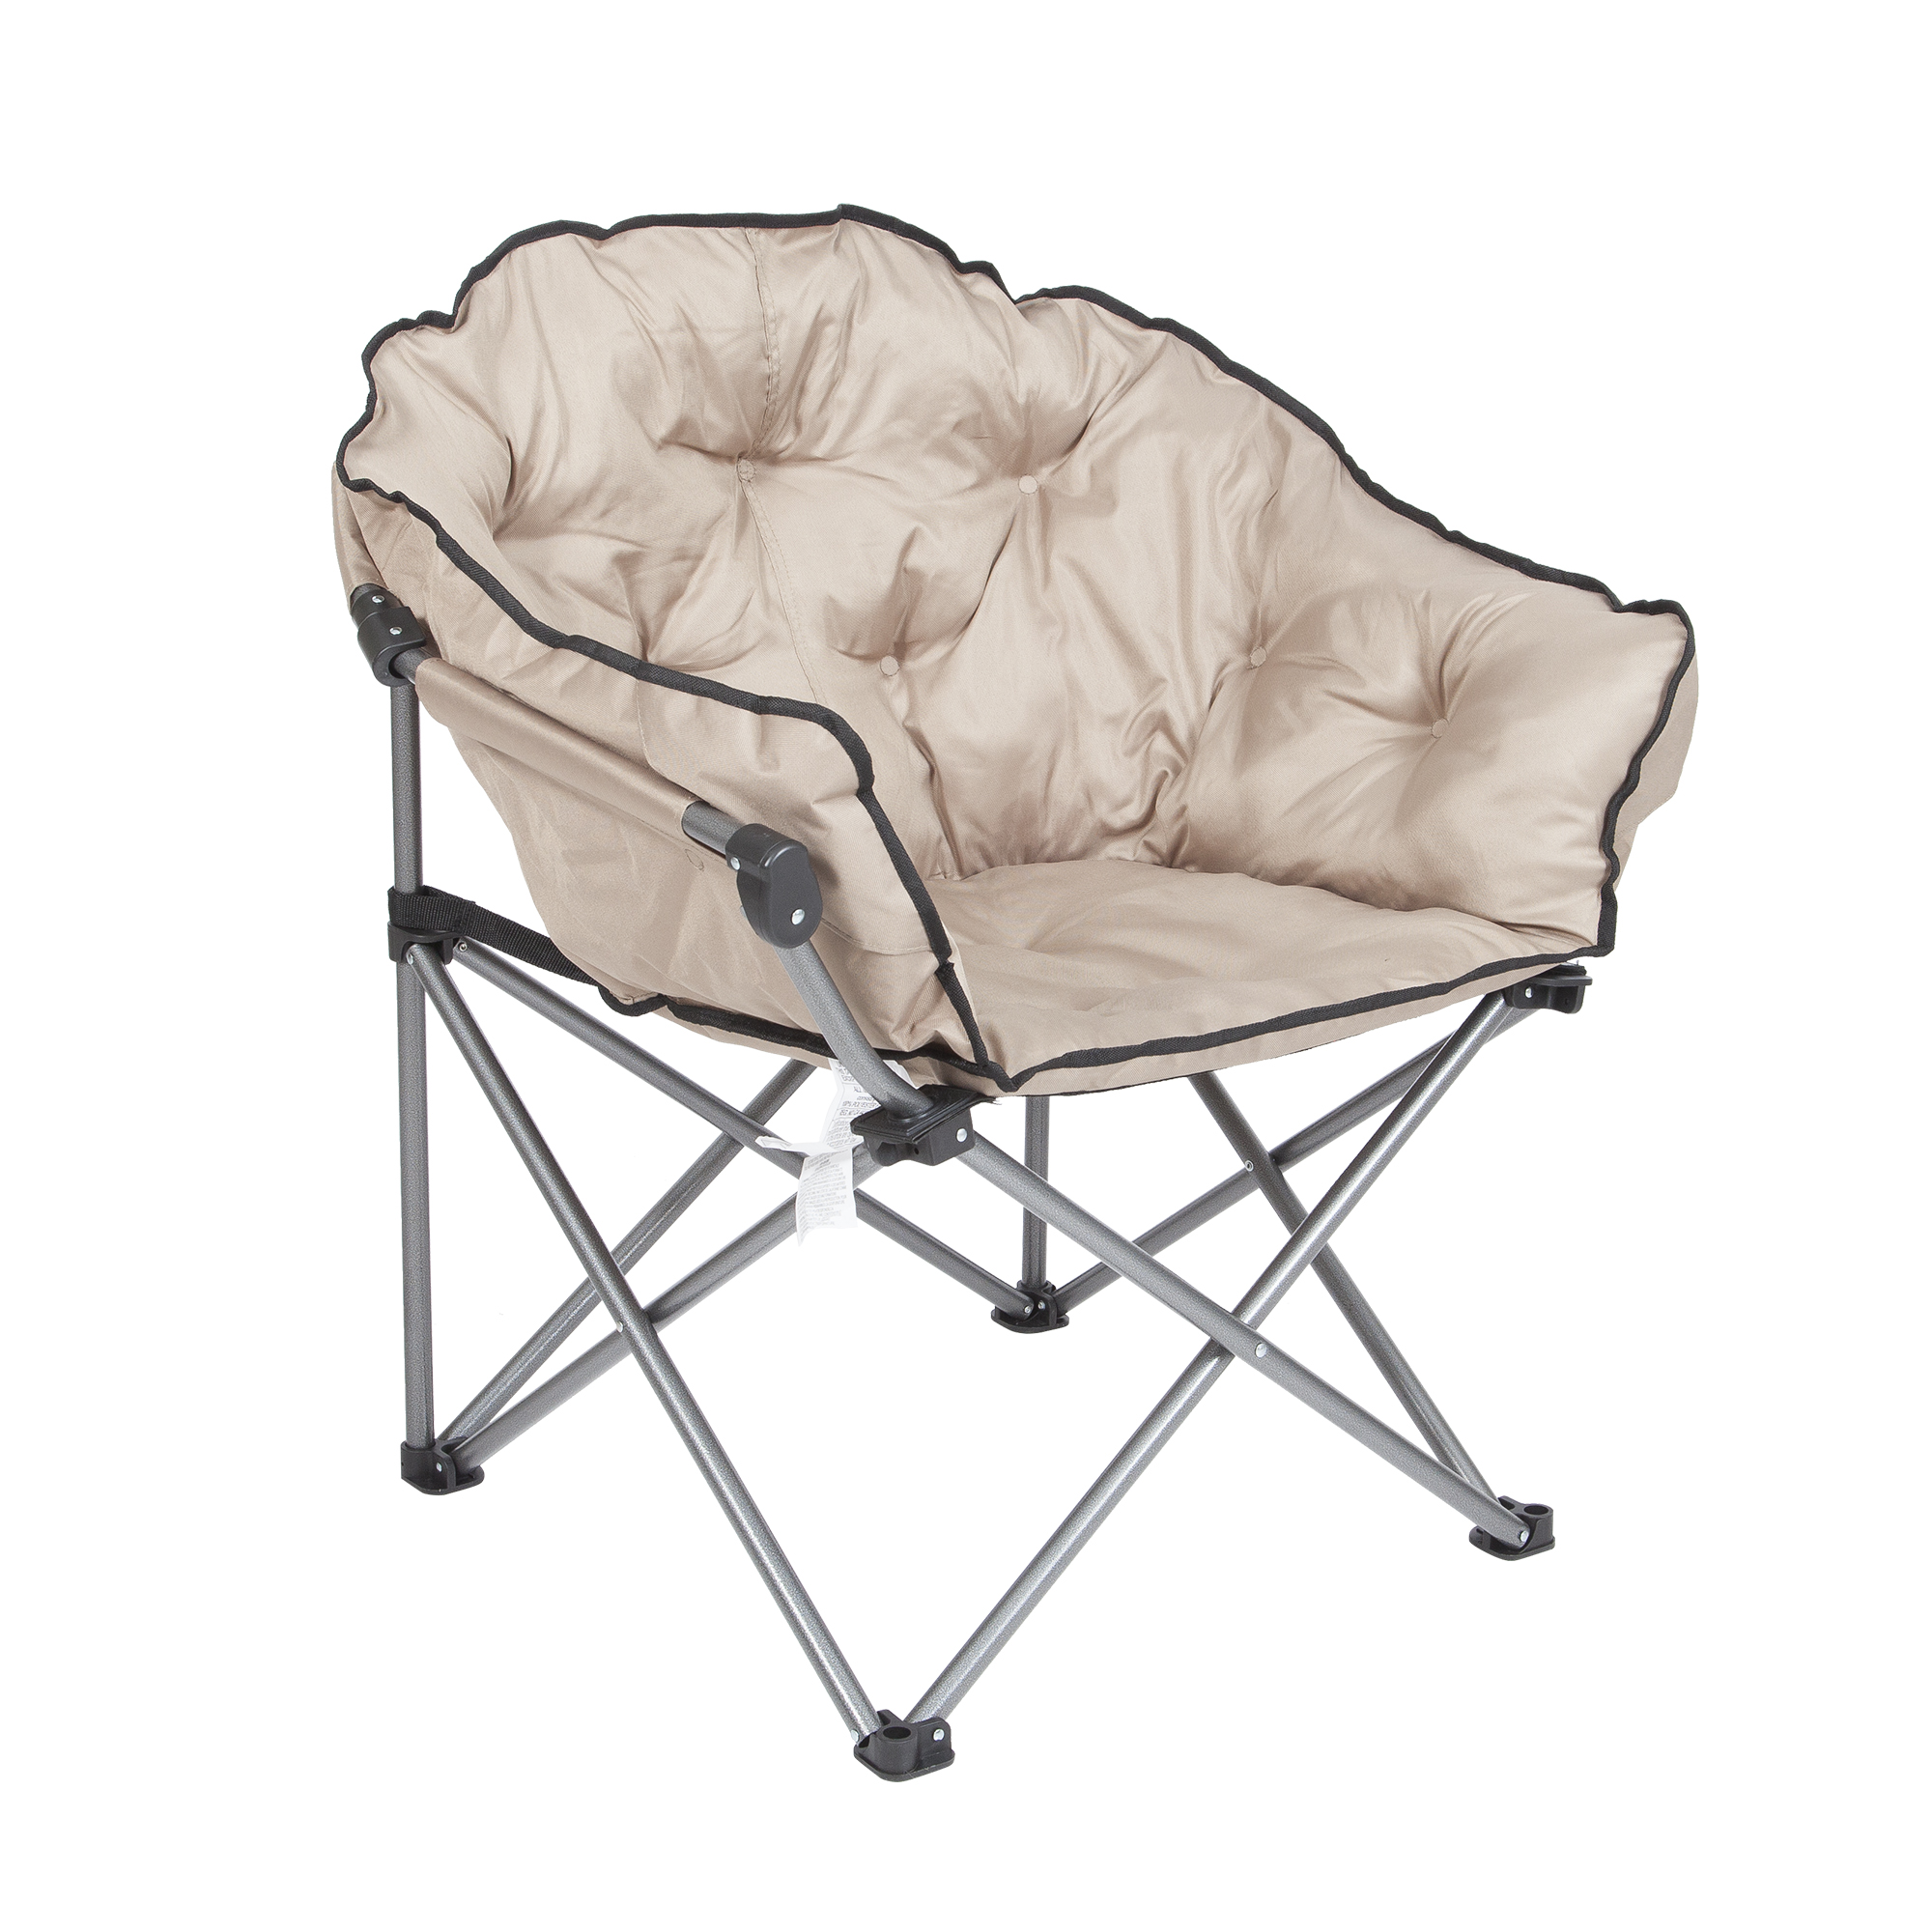 Amazing Details About Mac Sports Foldable Padded Outdoor Club Camping Chair With Carry Bag Beige Uwap Interior Chair Design Uwaporg